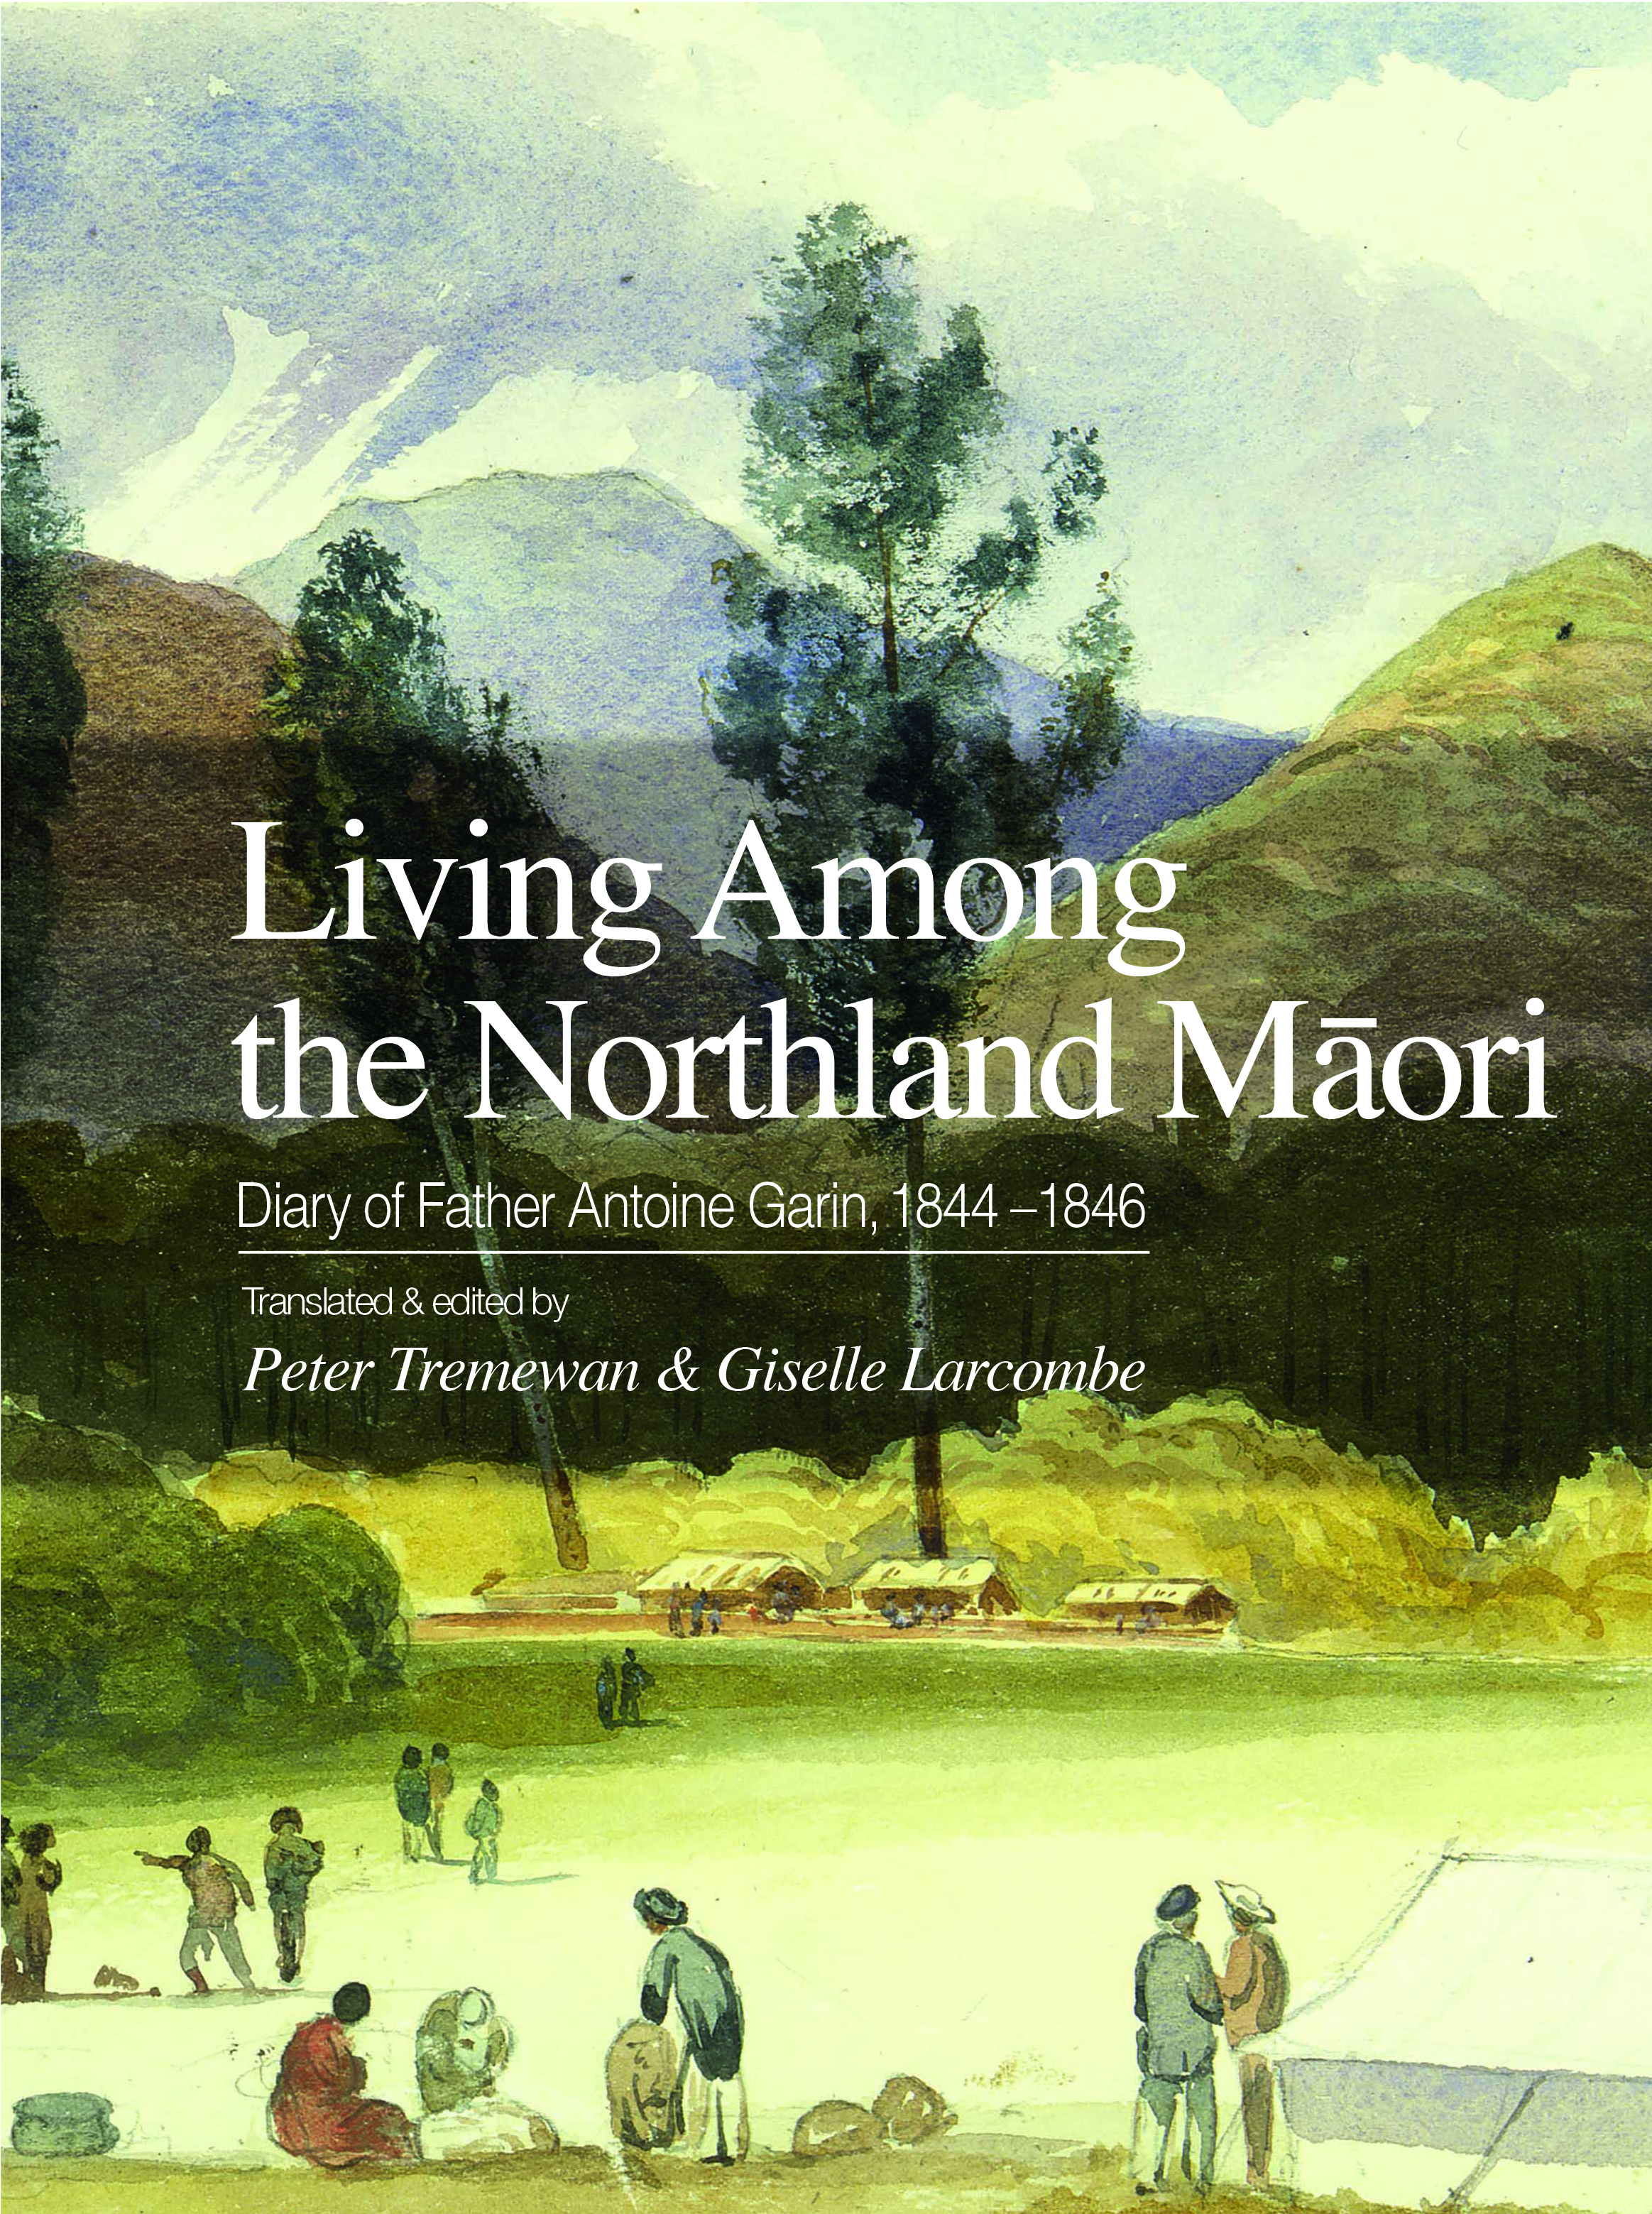 Living Among the Northland Māori: Diary of Father Antoine Garin, 1844–1846,  Translated and edited by Peter Tremewan and Giselle Larcombe, published by Canterbury University Press, March 2019, ISBN: 978-1-98-850302-8,    RRP $89.99